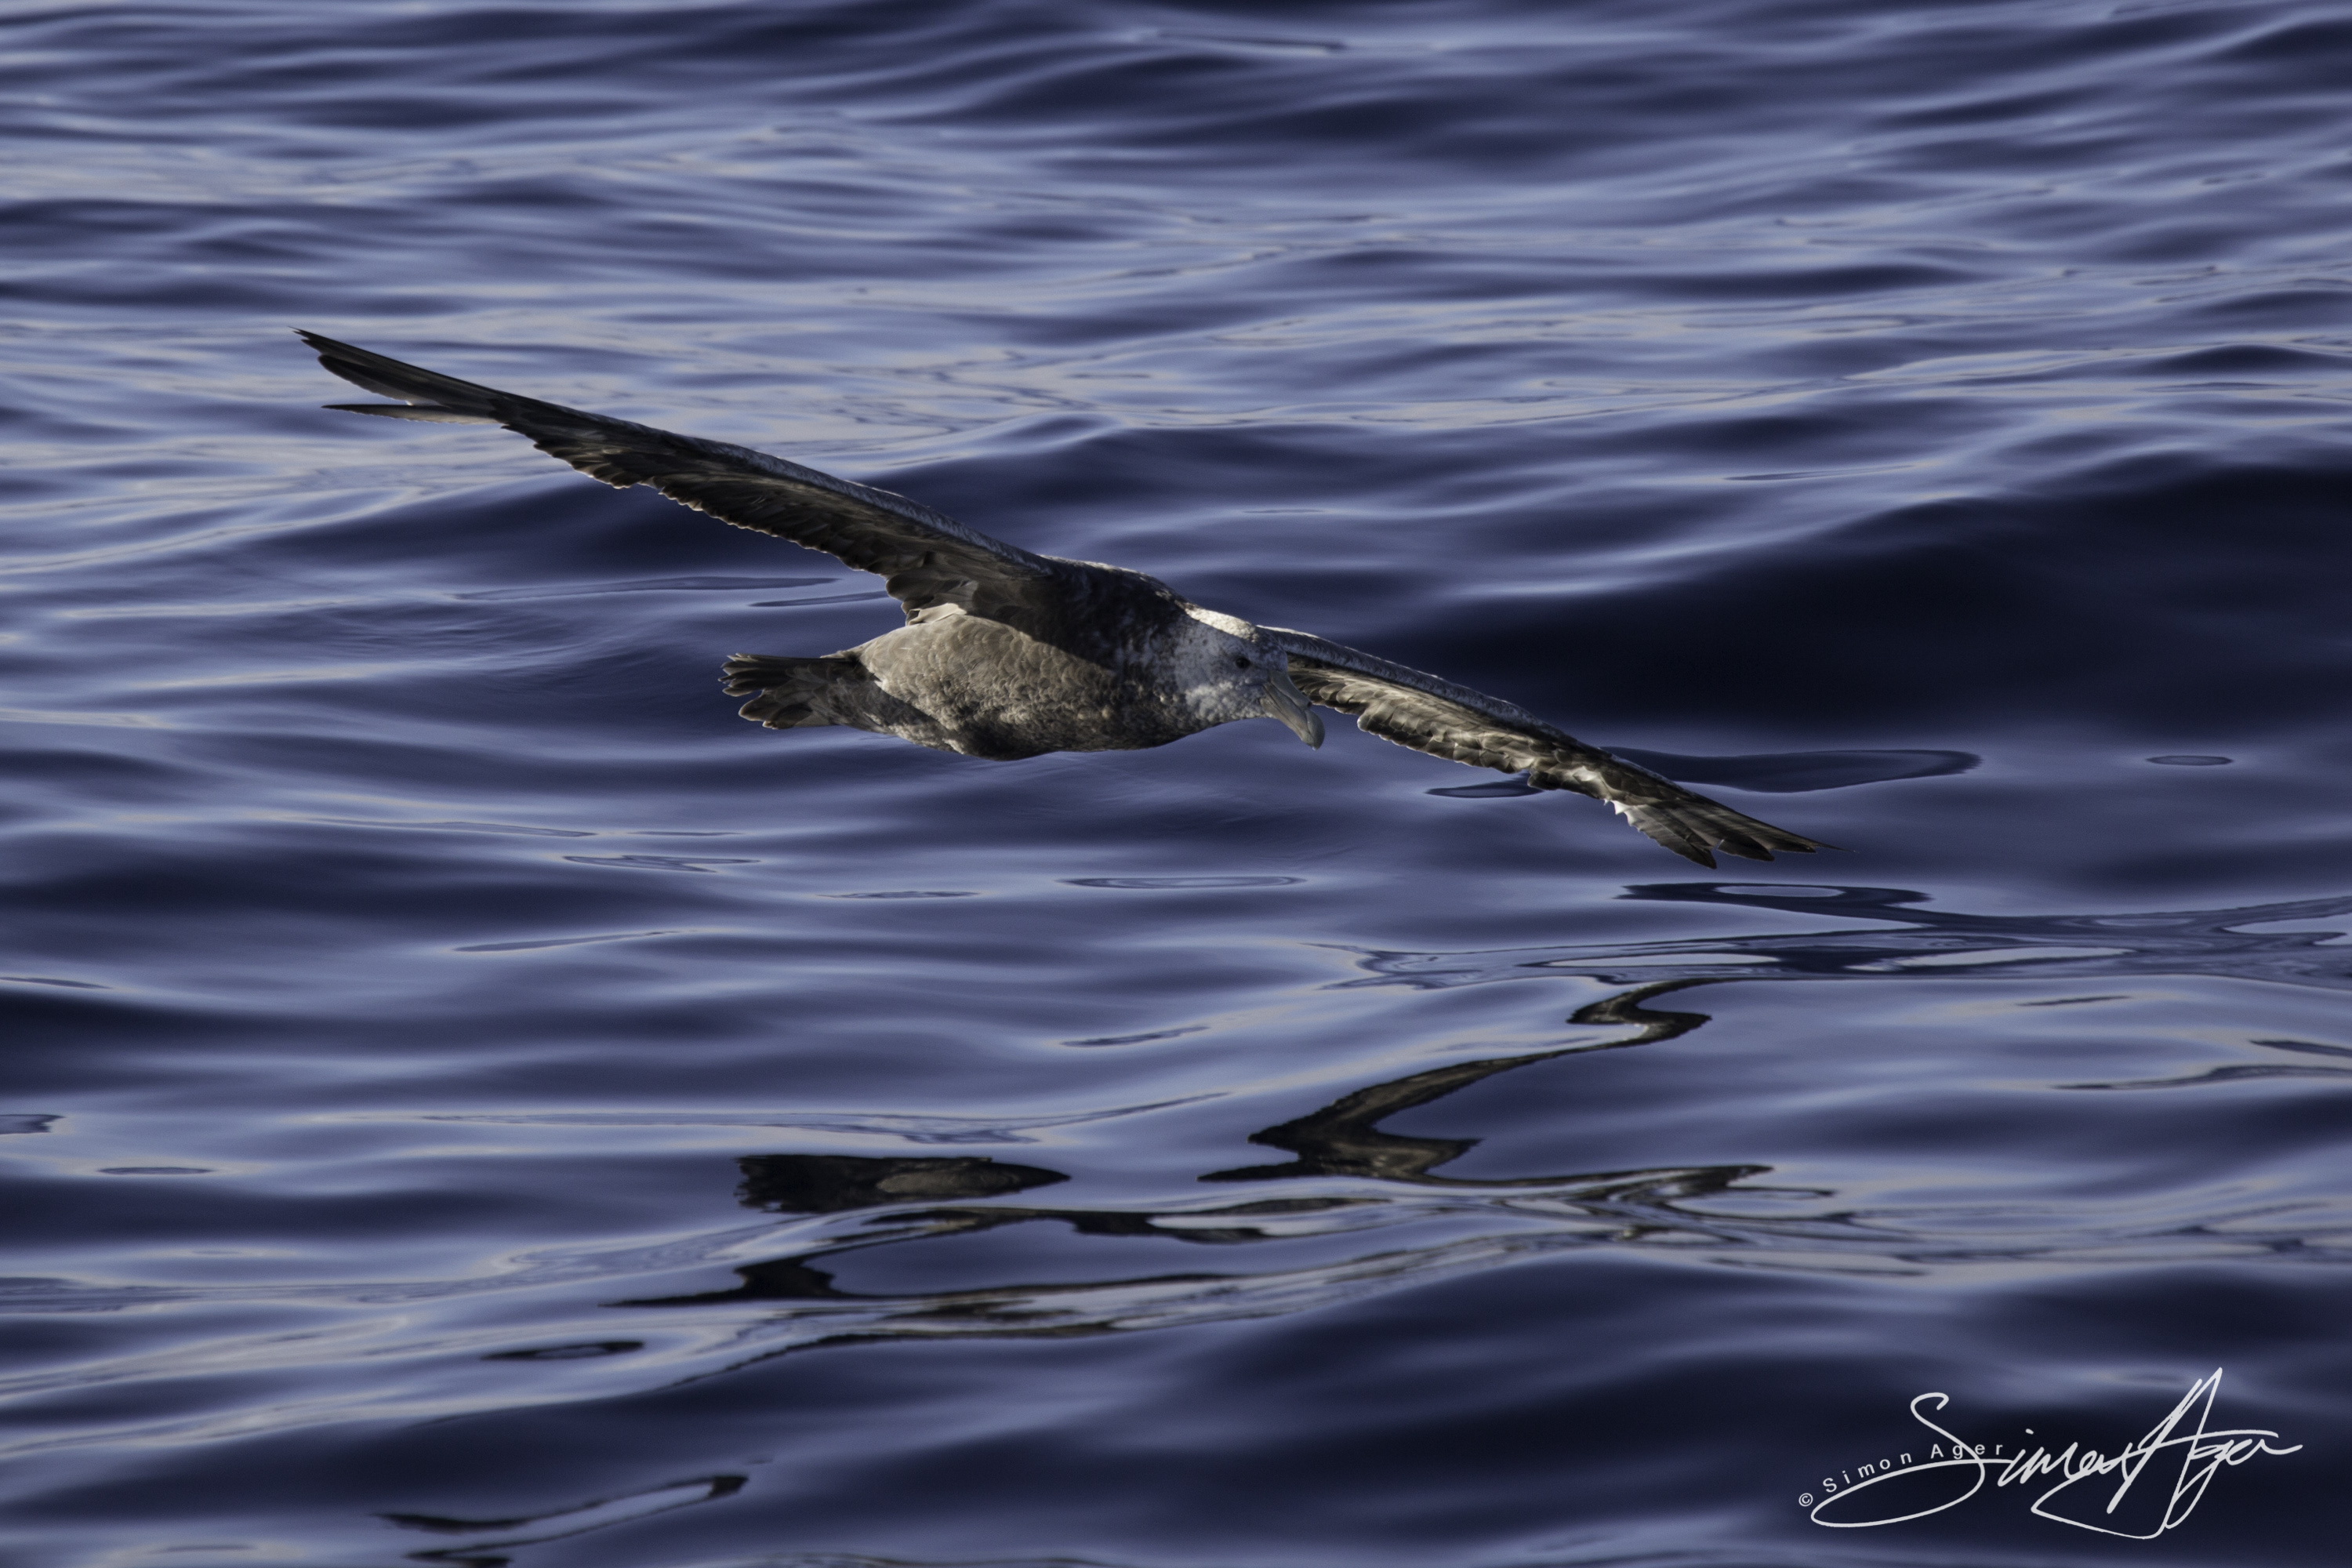 170218-SA-Giant-Petrel-running-start-for-takeoff-003-7482